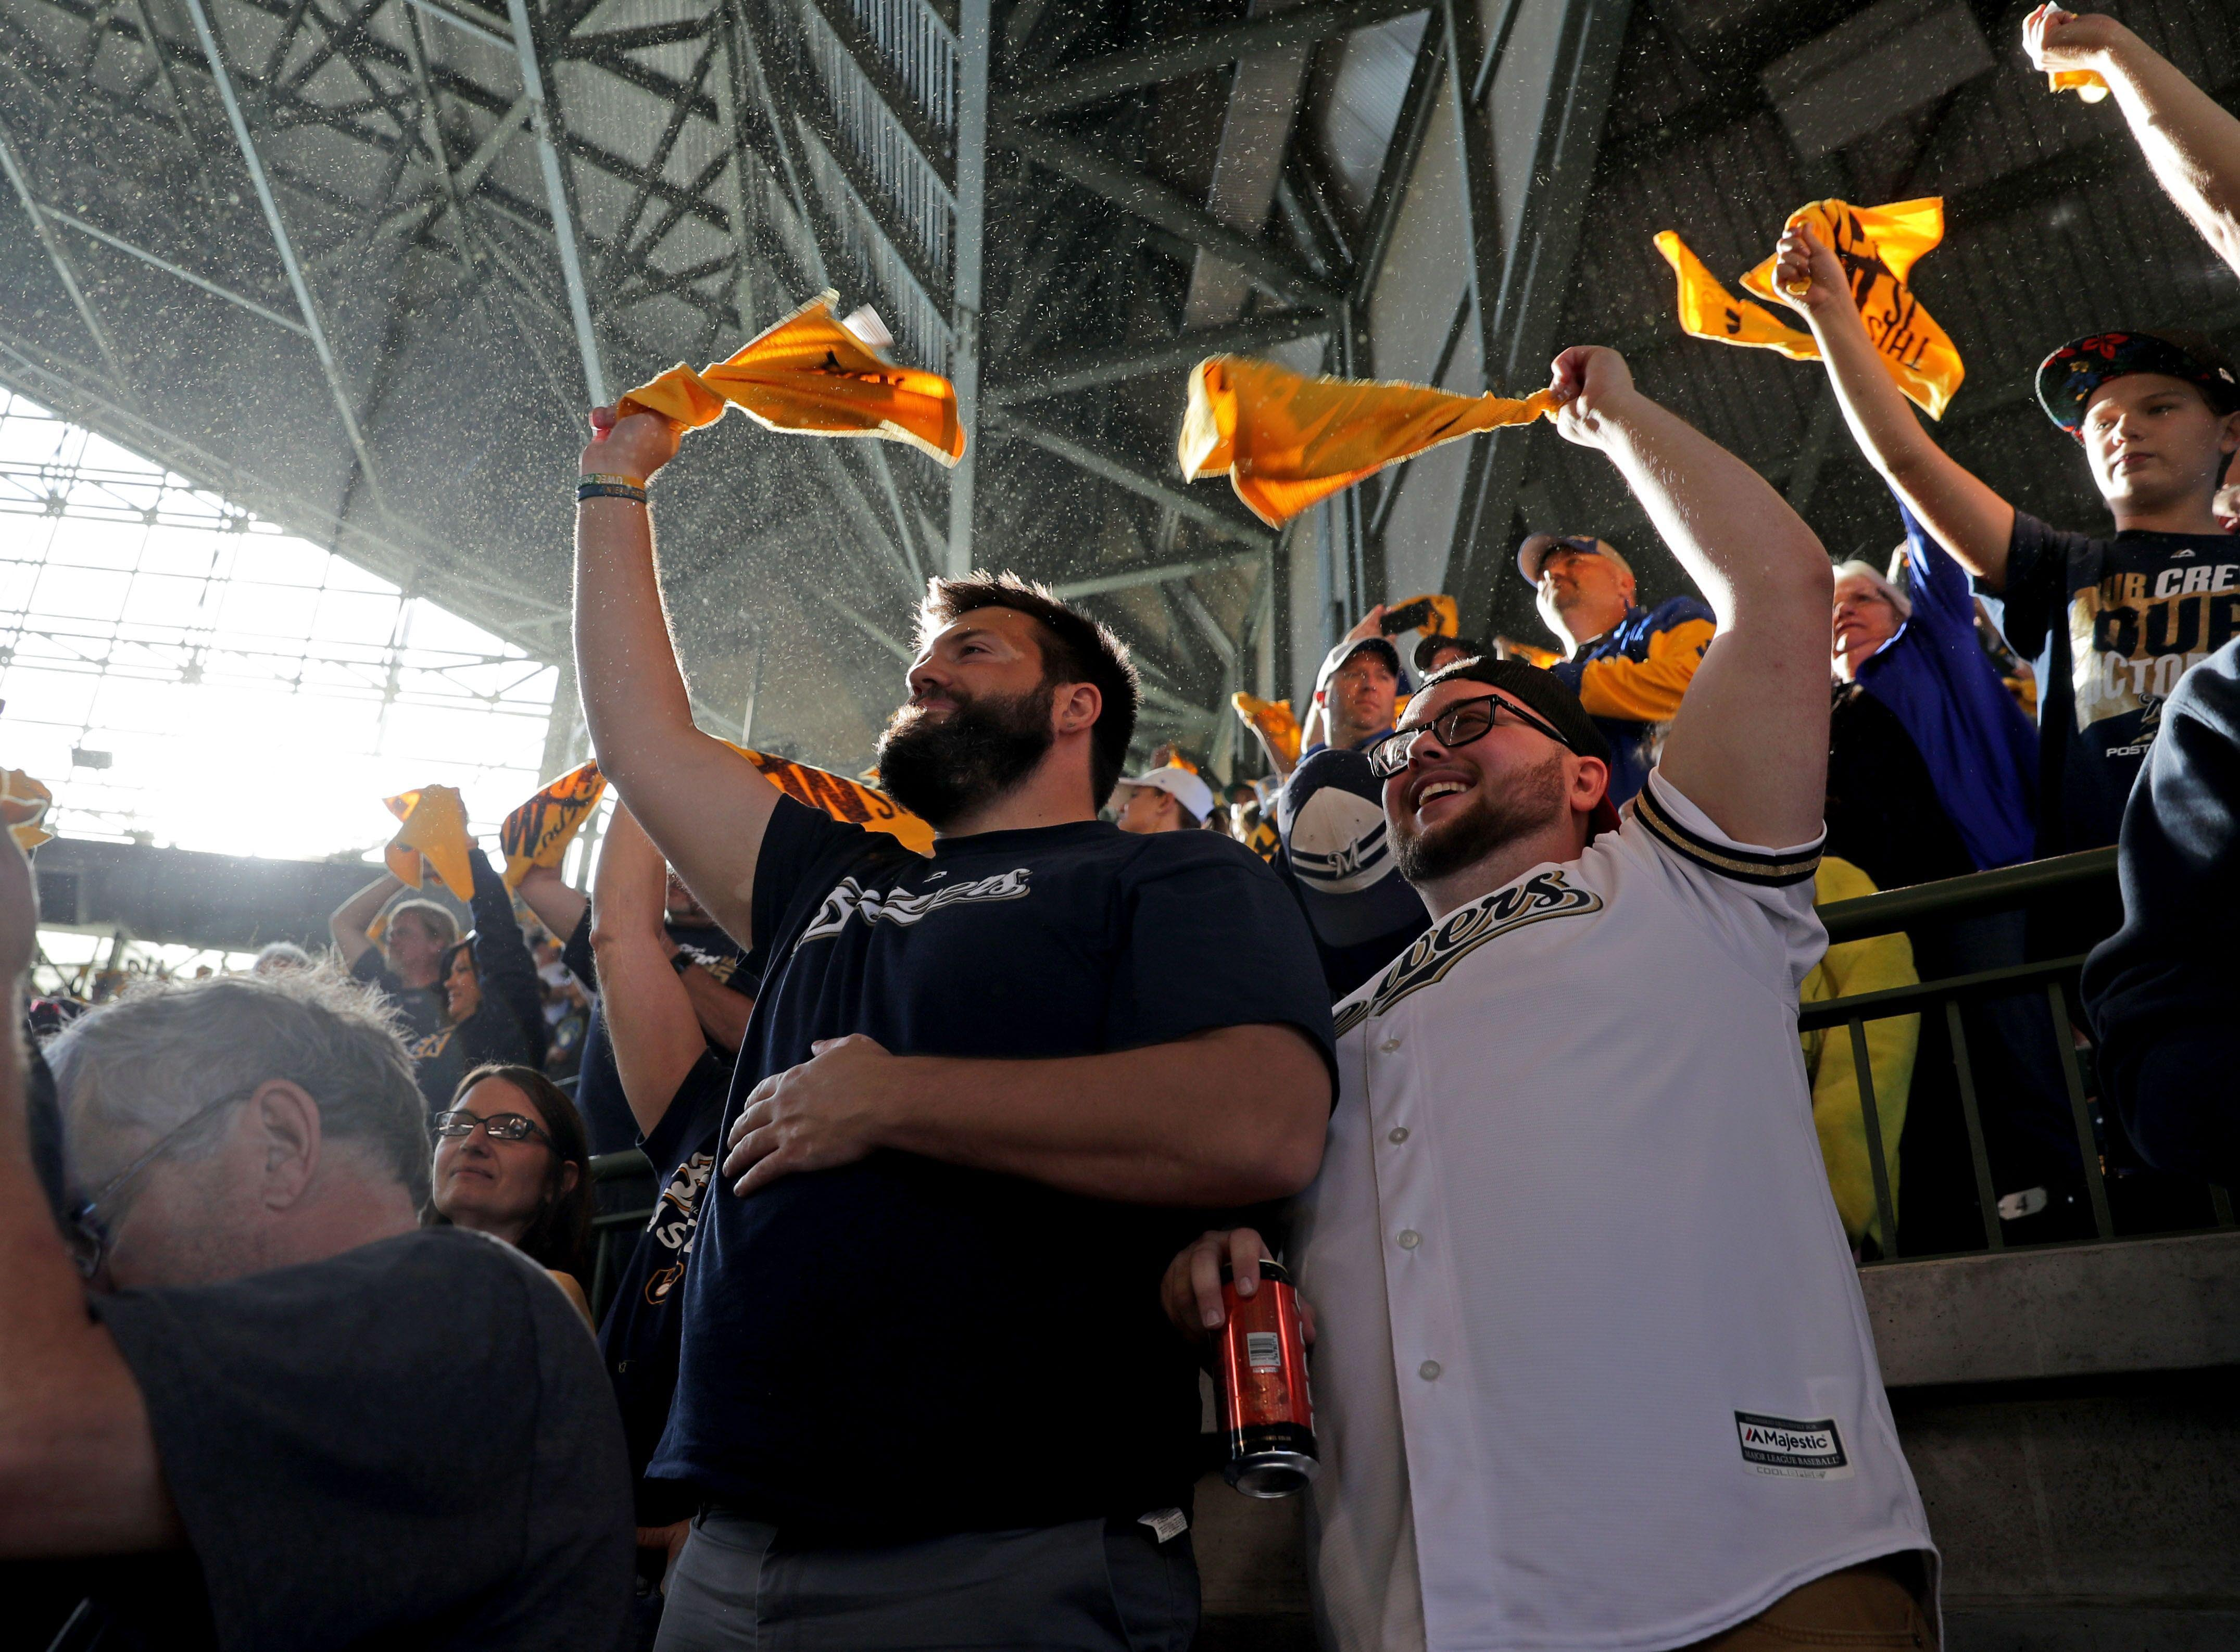 Oct 4, 2018; Milwaukee, WI, USA; Milwaukee Brewers fans Mathew Riedel (left) and Hunter Halverson wave rally towels during in game one of the 2018 NLDS playoff baseball series against the Colorado Rockies at Miller Park. Mandatory Credit: Mike De Sisti/Milwaukee Journal Sentinel via USA TODAY Sports ORG XMIT: USATSI-389881 ORIG FILE ID: 20181004_jla_bs5_098.jpg